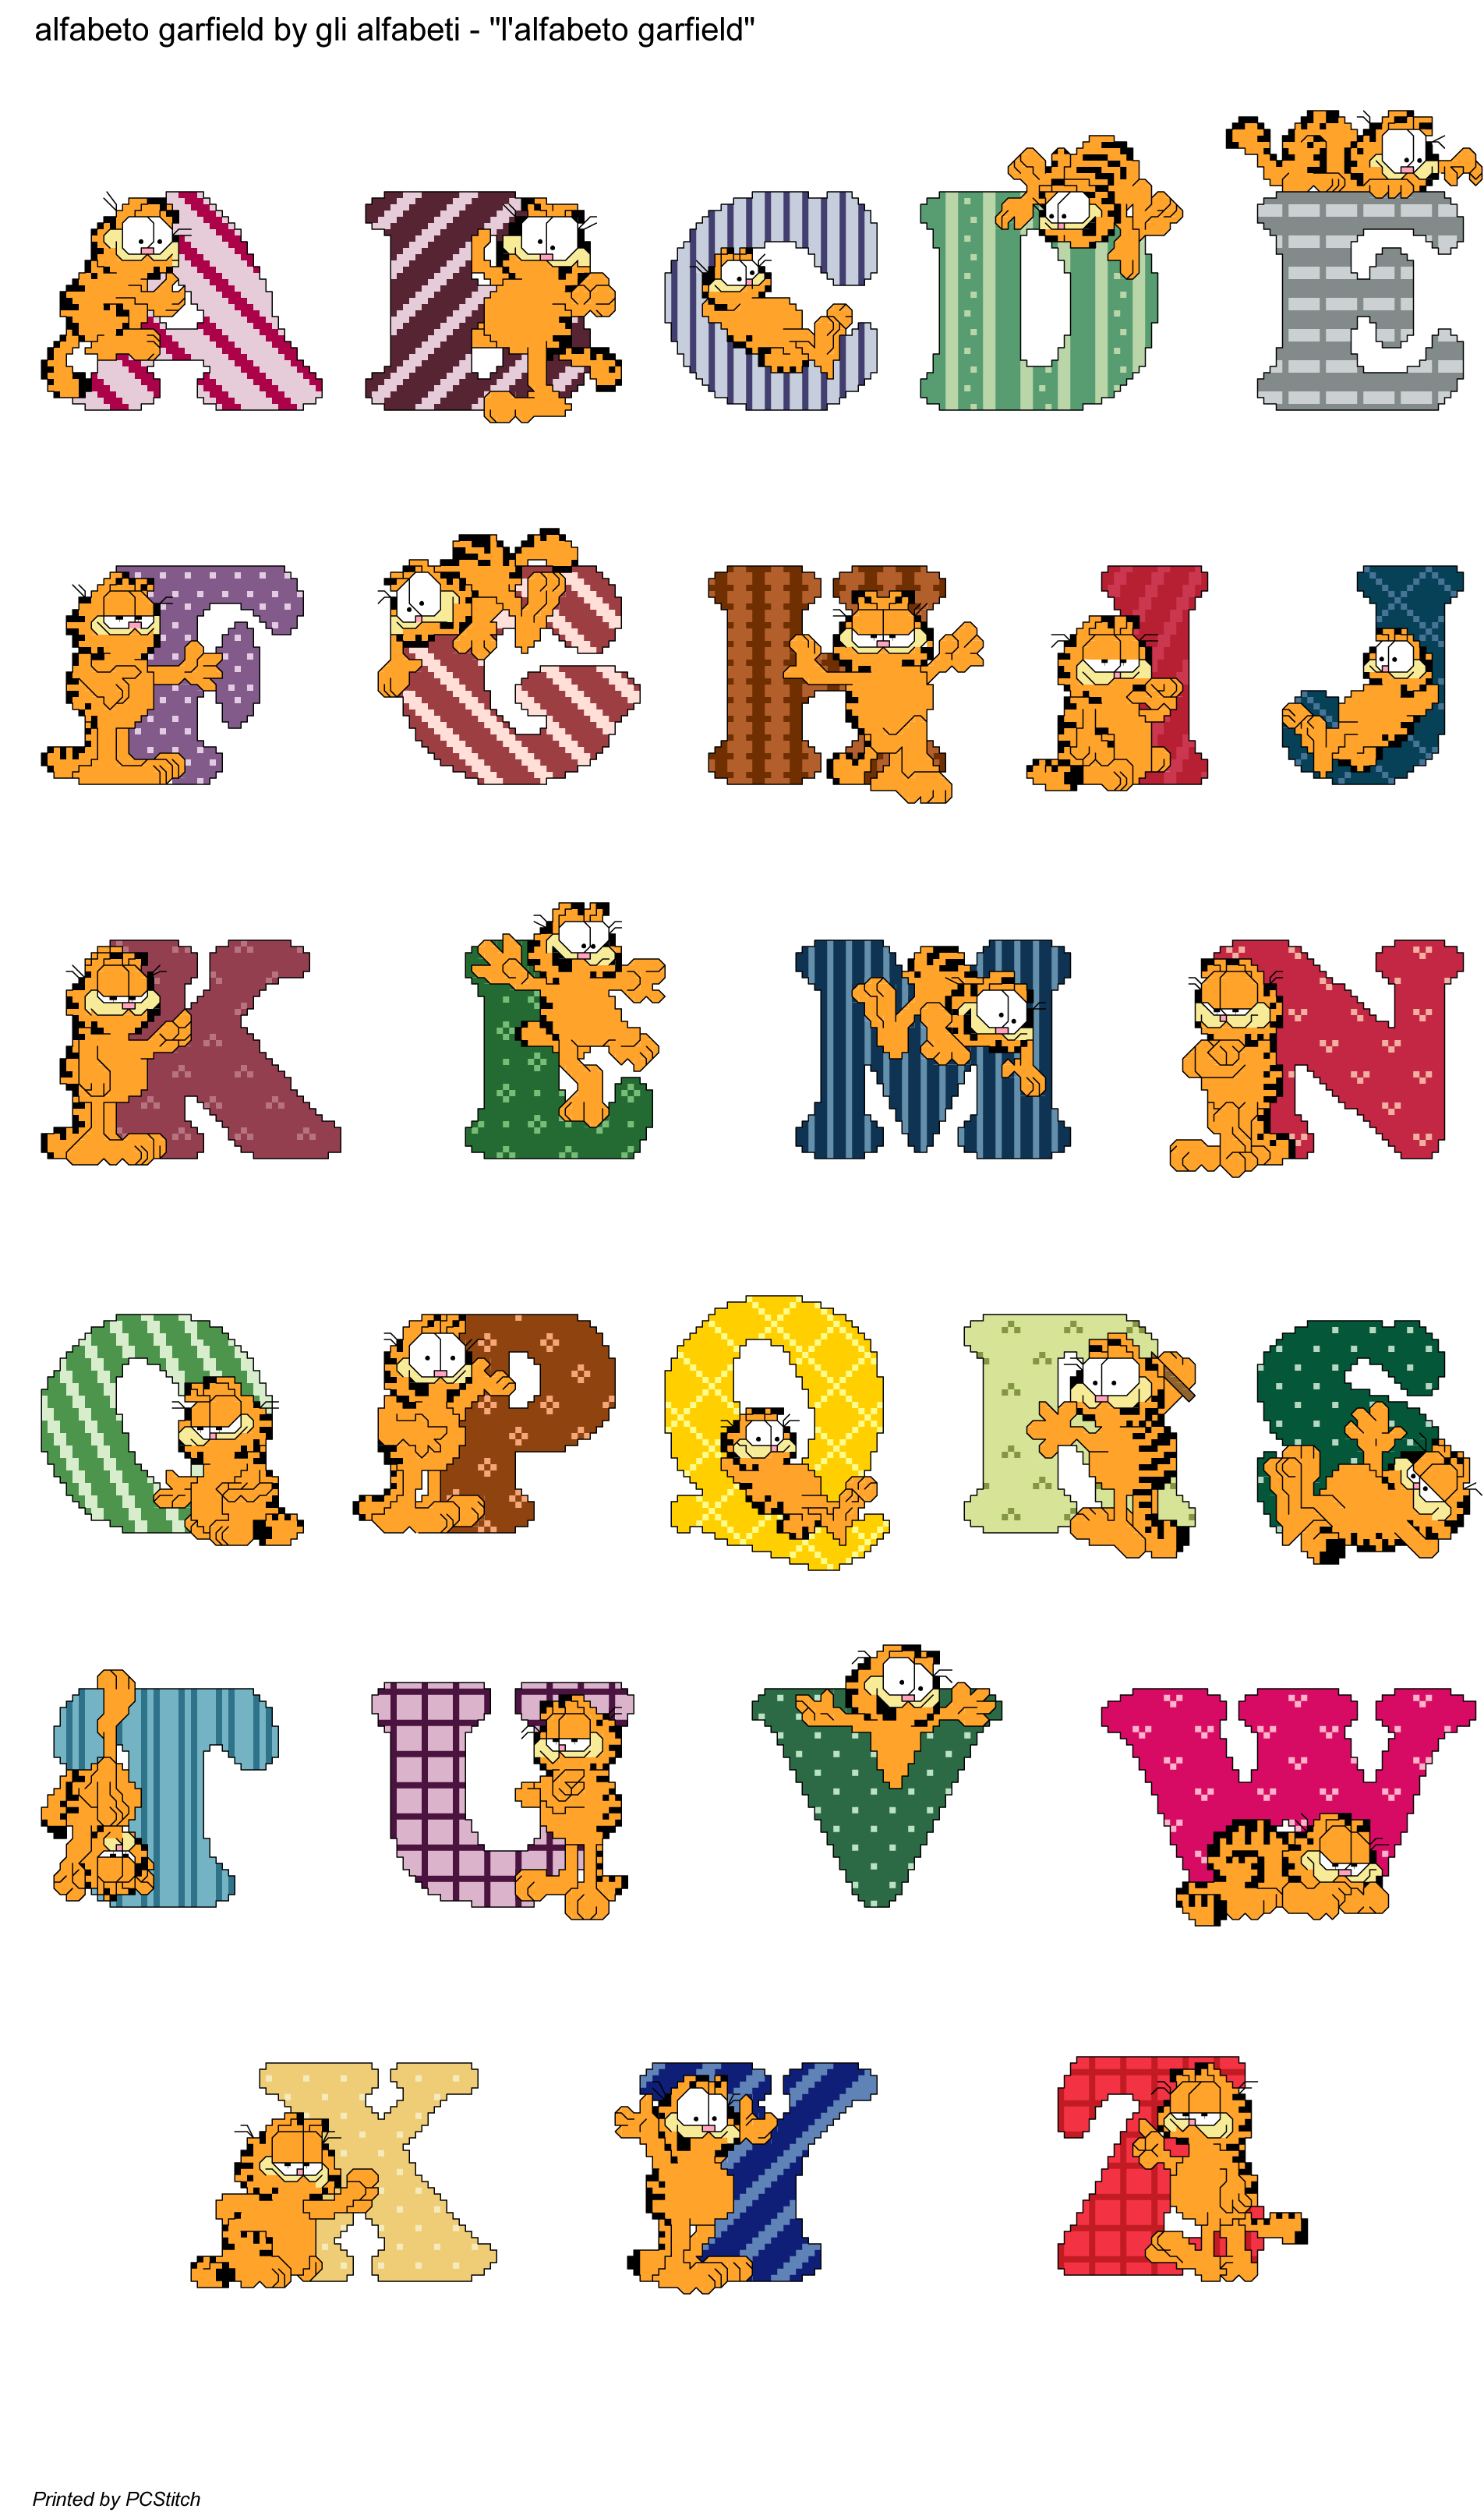 Free cross stitch clipart picture freeuse library alfabeto garfield | KIRJAIMET & NUMEROT | Pinterest | Cross stitch ... picture freeuse library